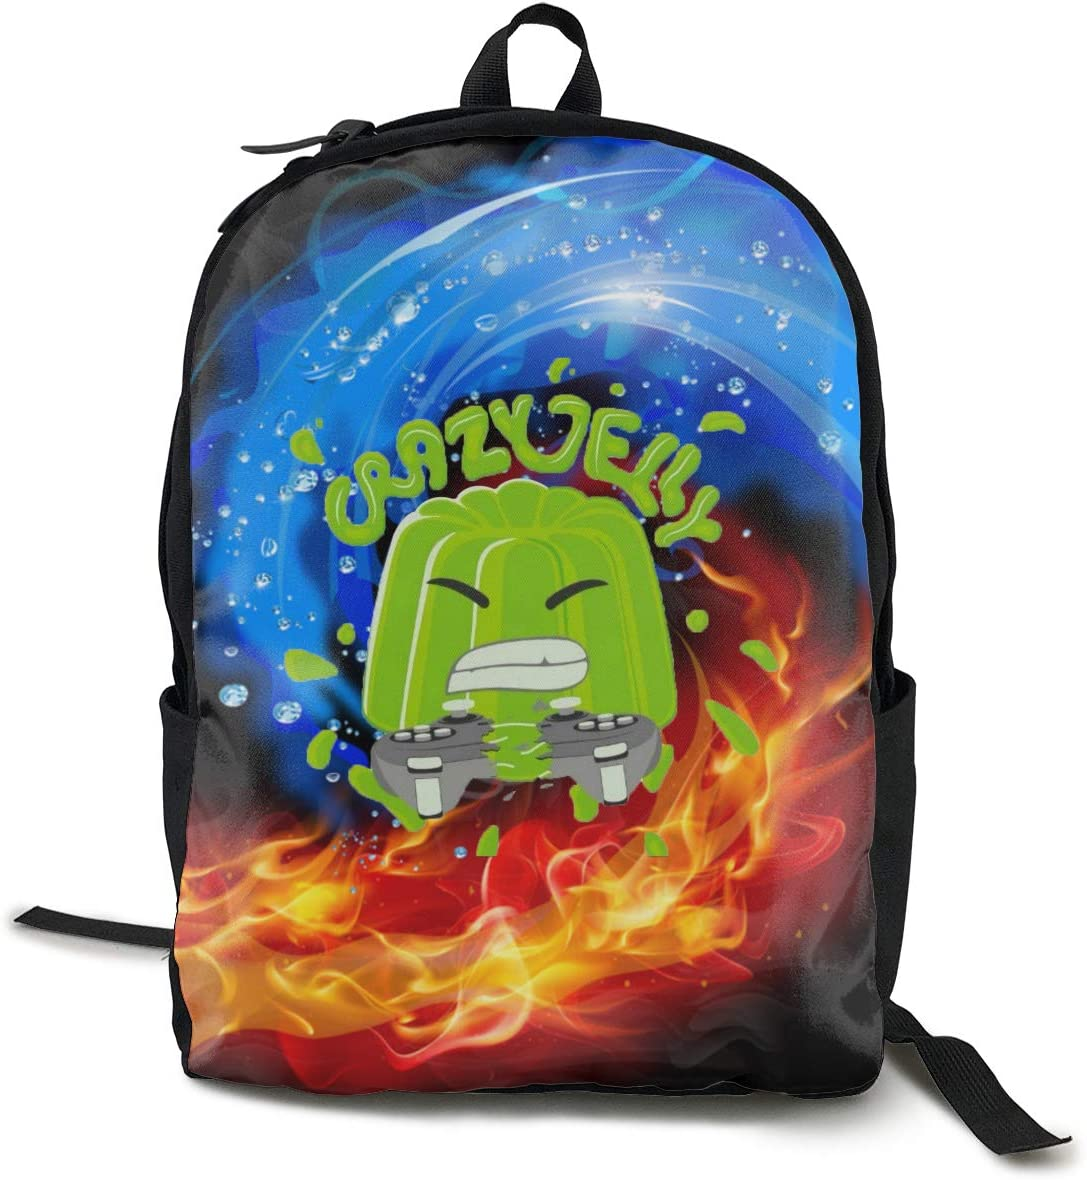 Meeting Kids Cute Schoolbag Crazy Jelly Bookbag 17 Inch Multifunctional Backpack For Teen Boys and Girls YOUTUBE-04